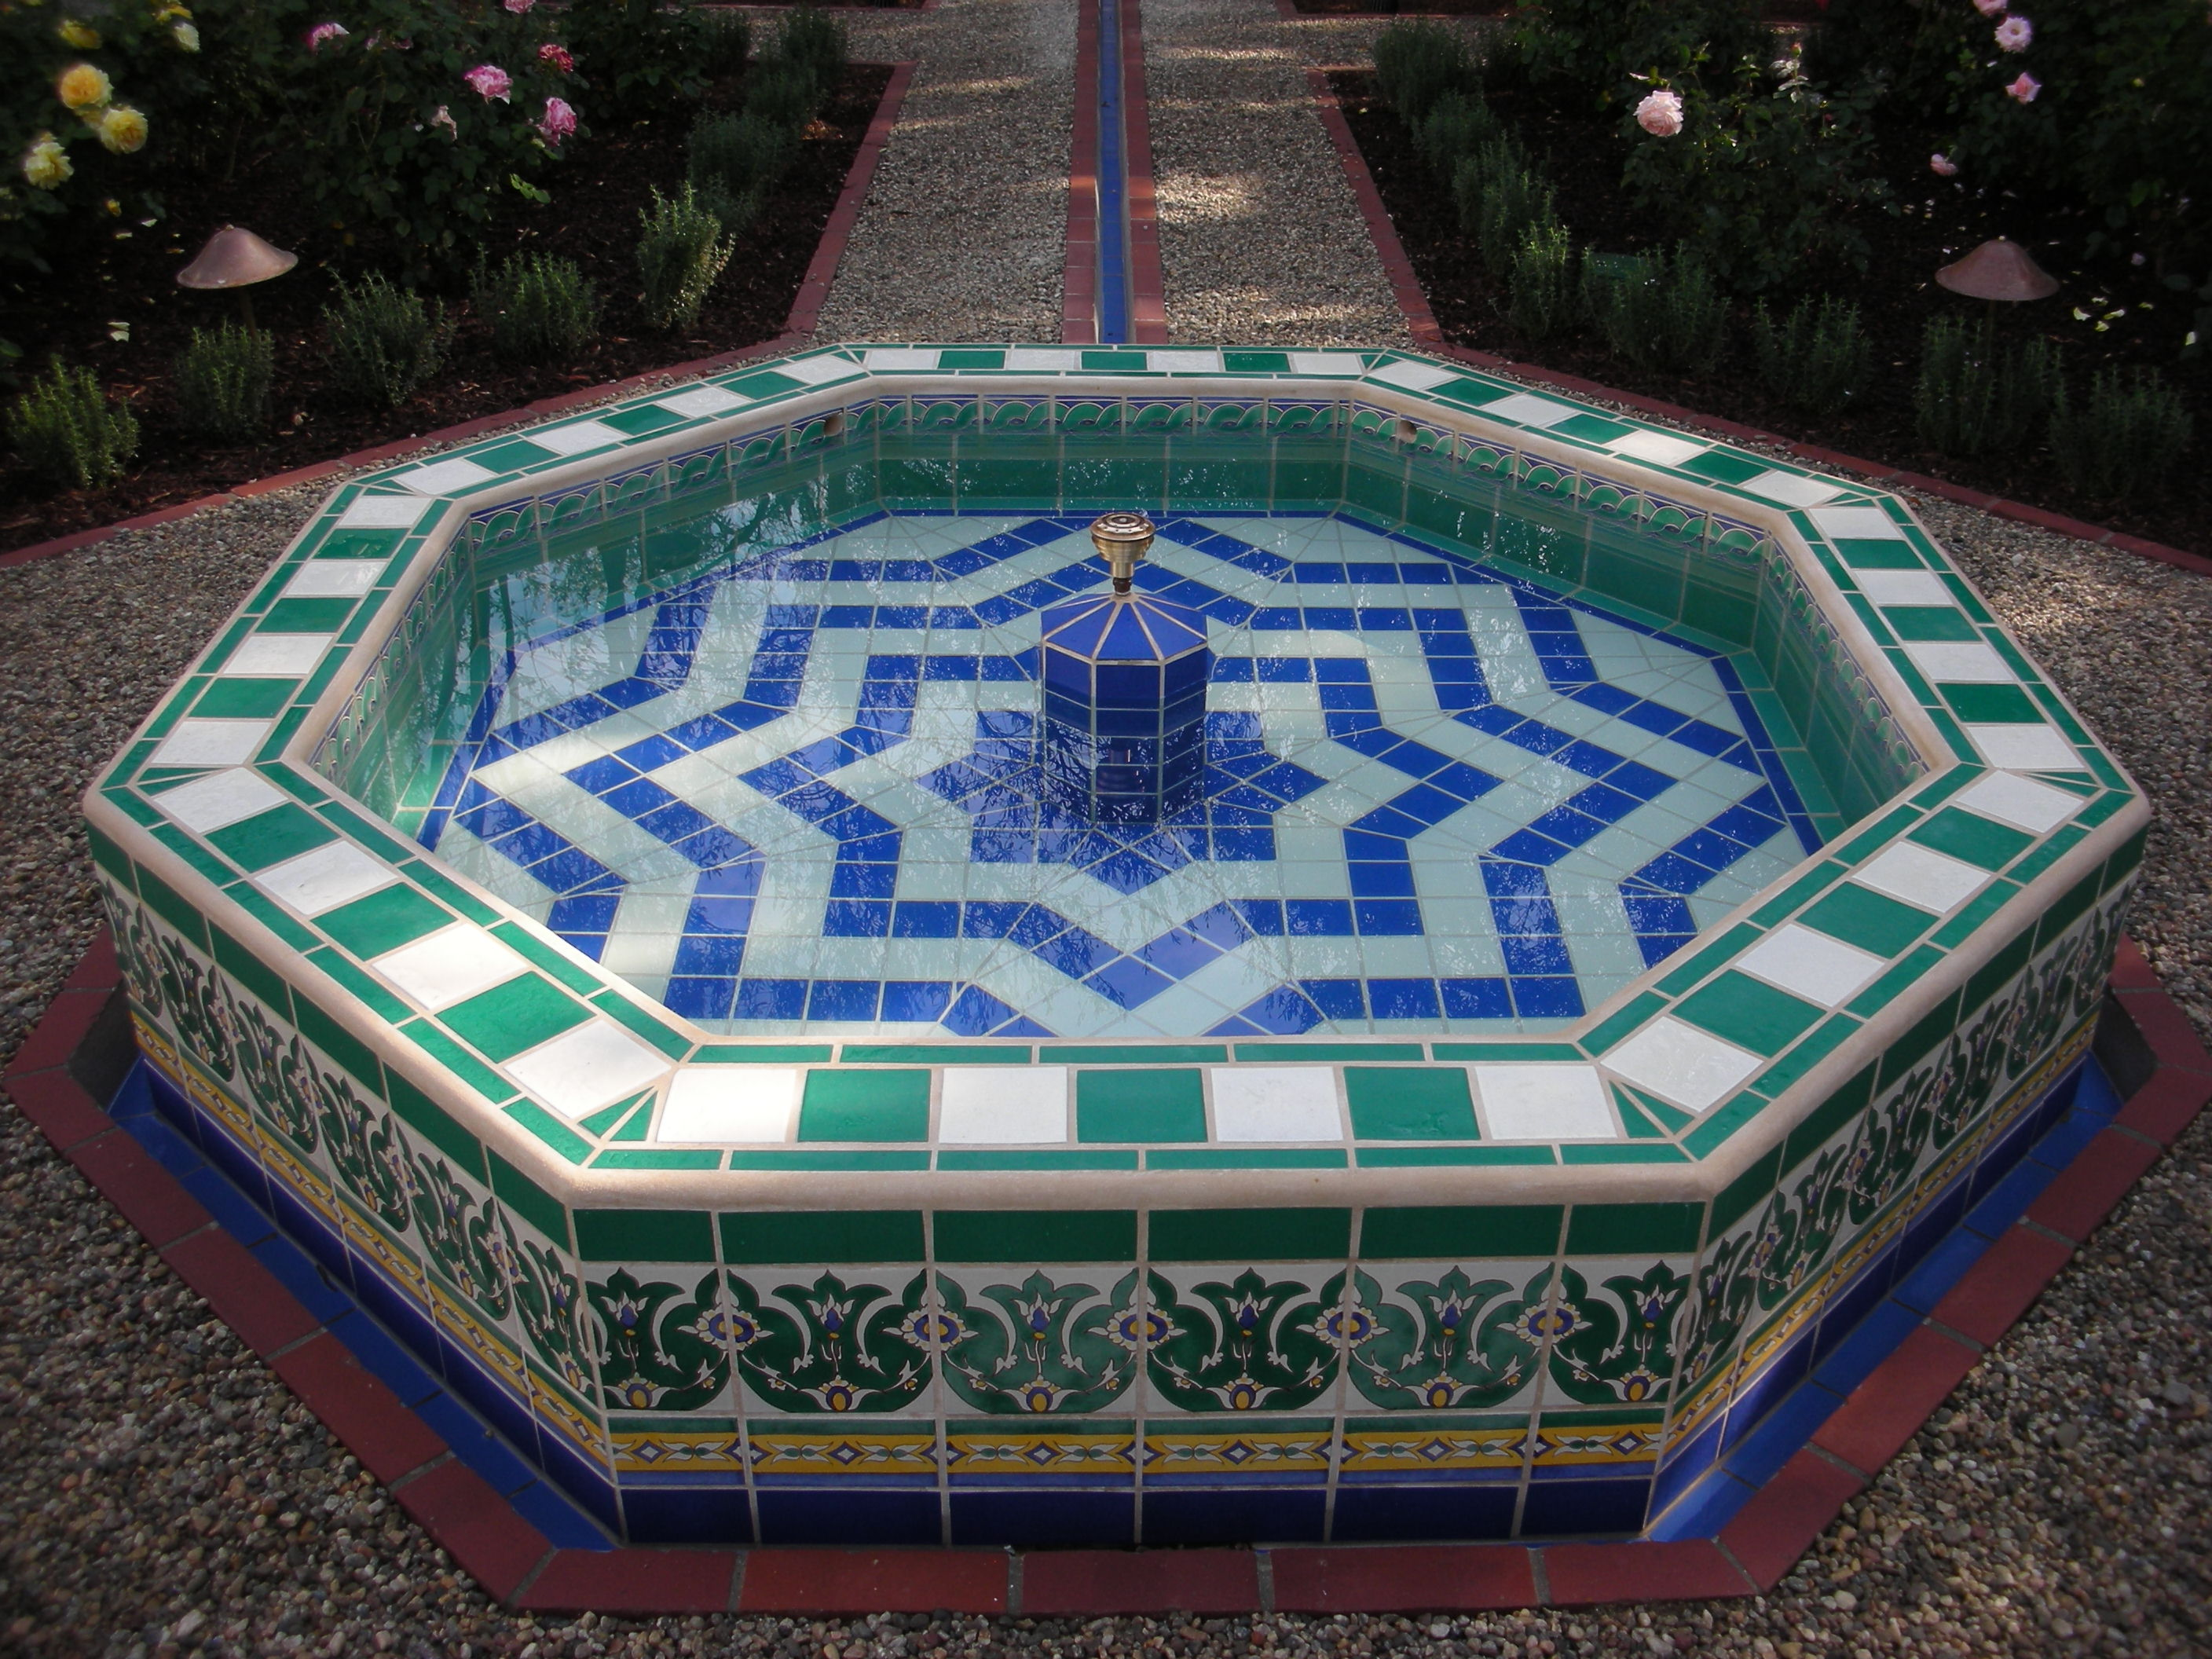 FileStar fountain in a garden that appears in the digital catalog